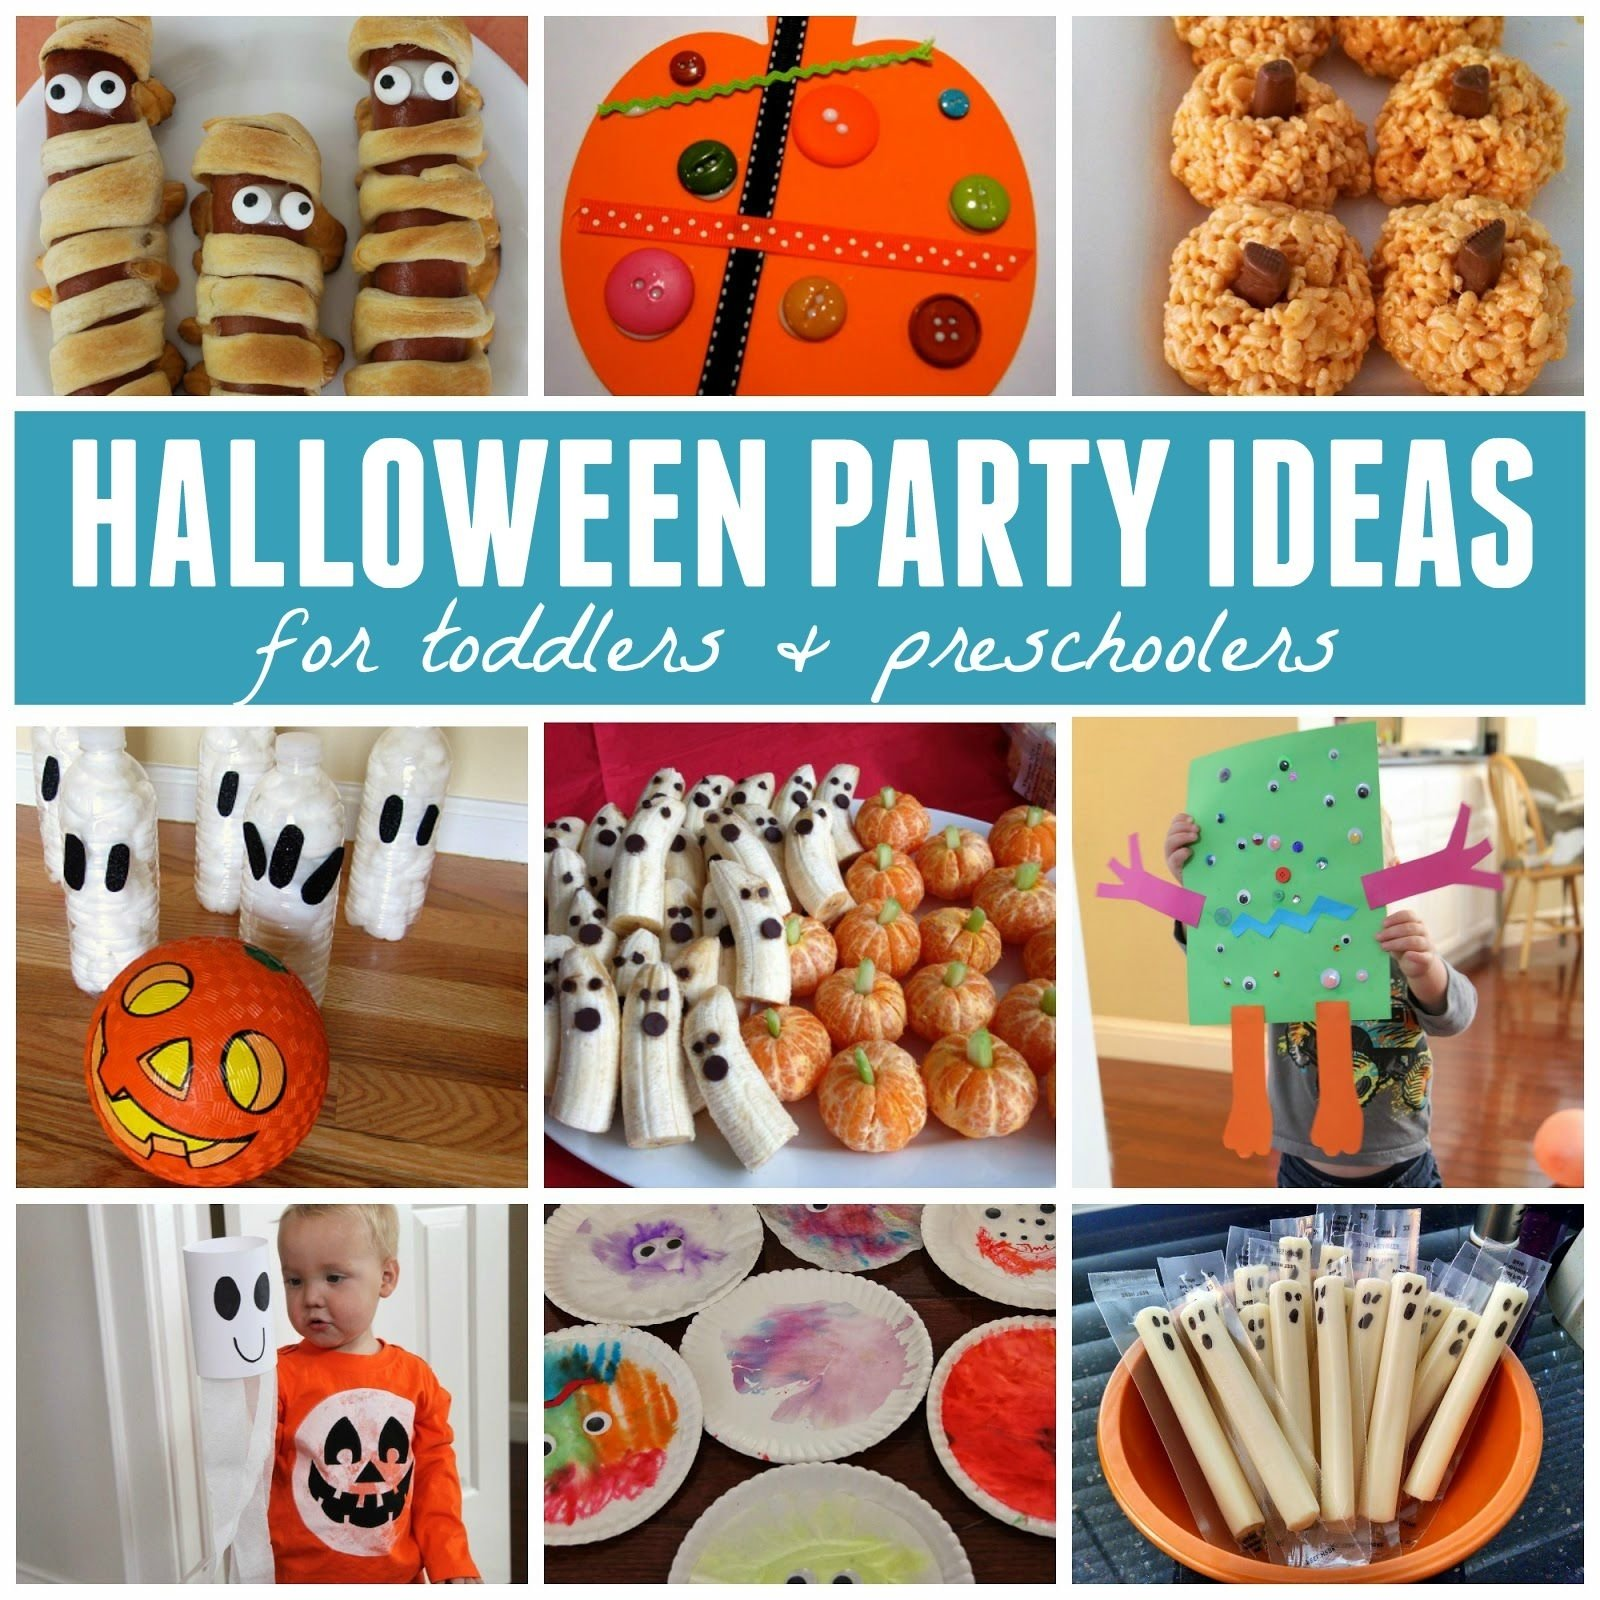 10 Gorgeous Halloween Party Ideas For Toddlers toddler approved last minute halloween party ideas 2020